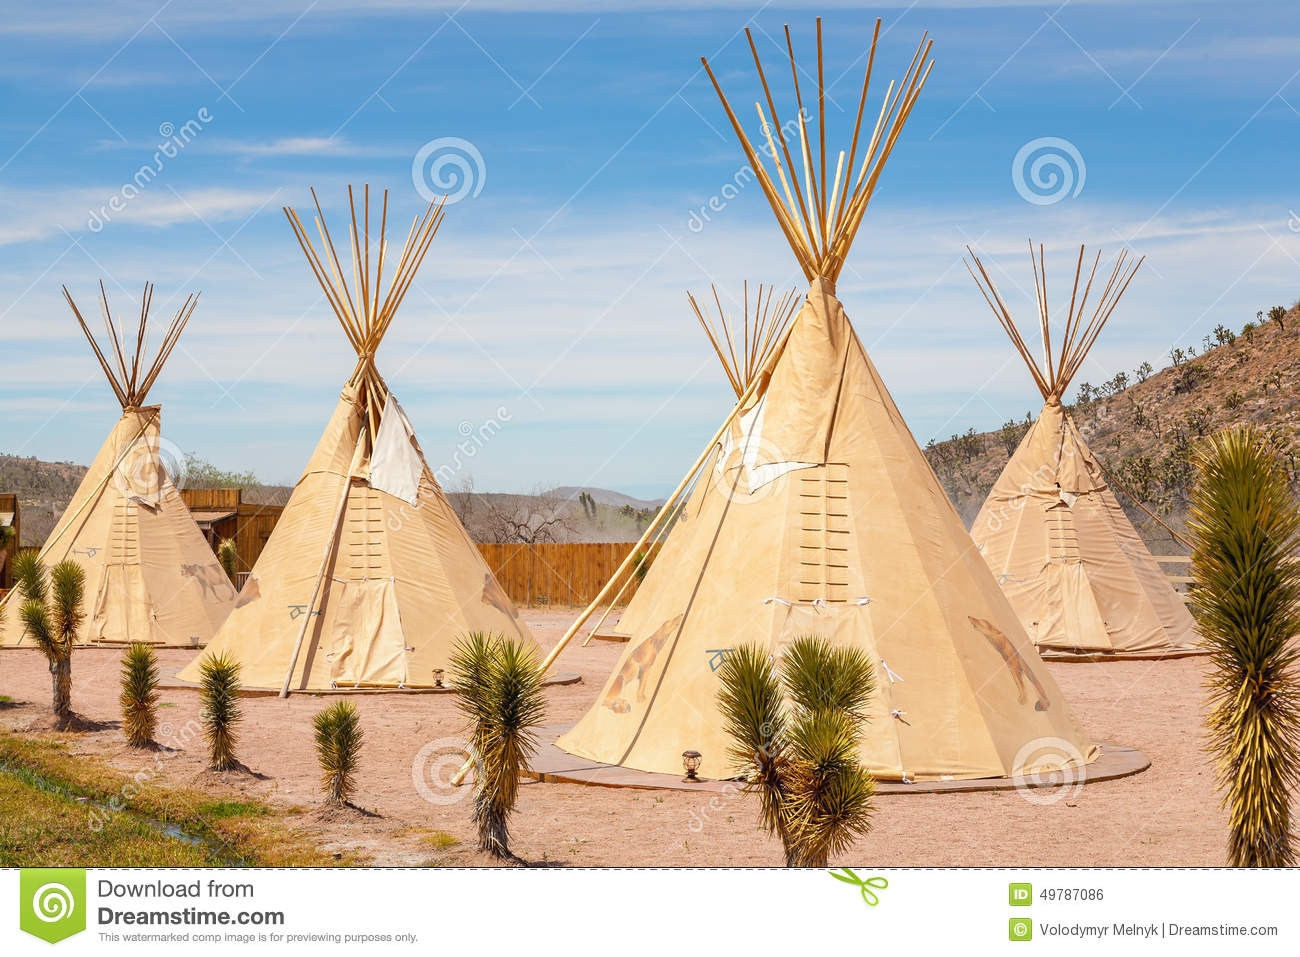 tipi national des indiens d 39 amerique photo stock image 49787086. Black Bedroom Furniture Sets. Home Design Ideas